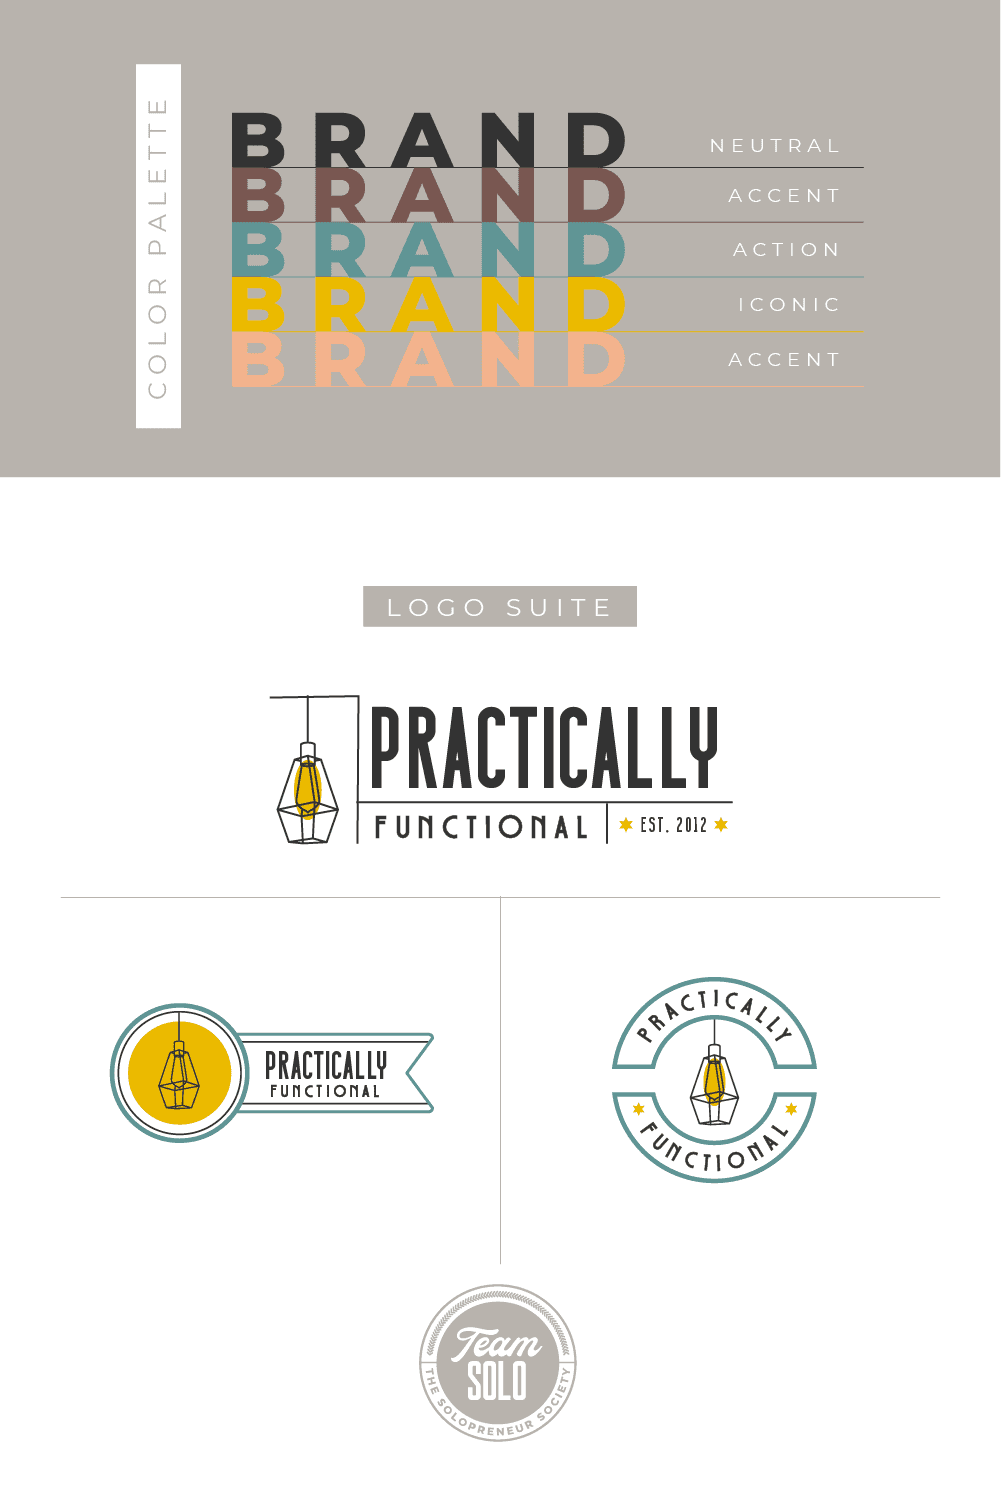 Practically Functional Brand Identity Design